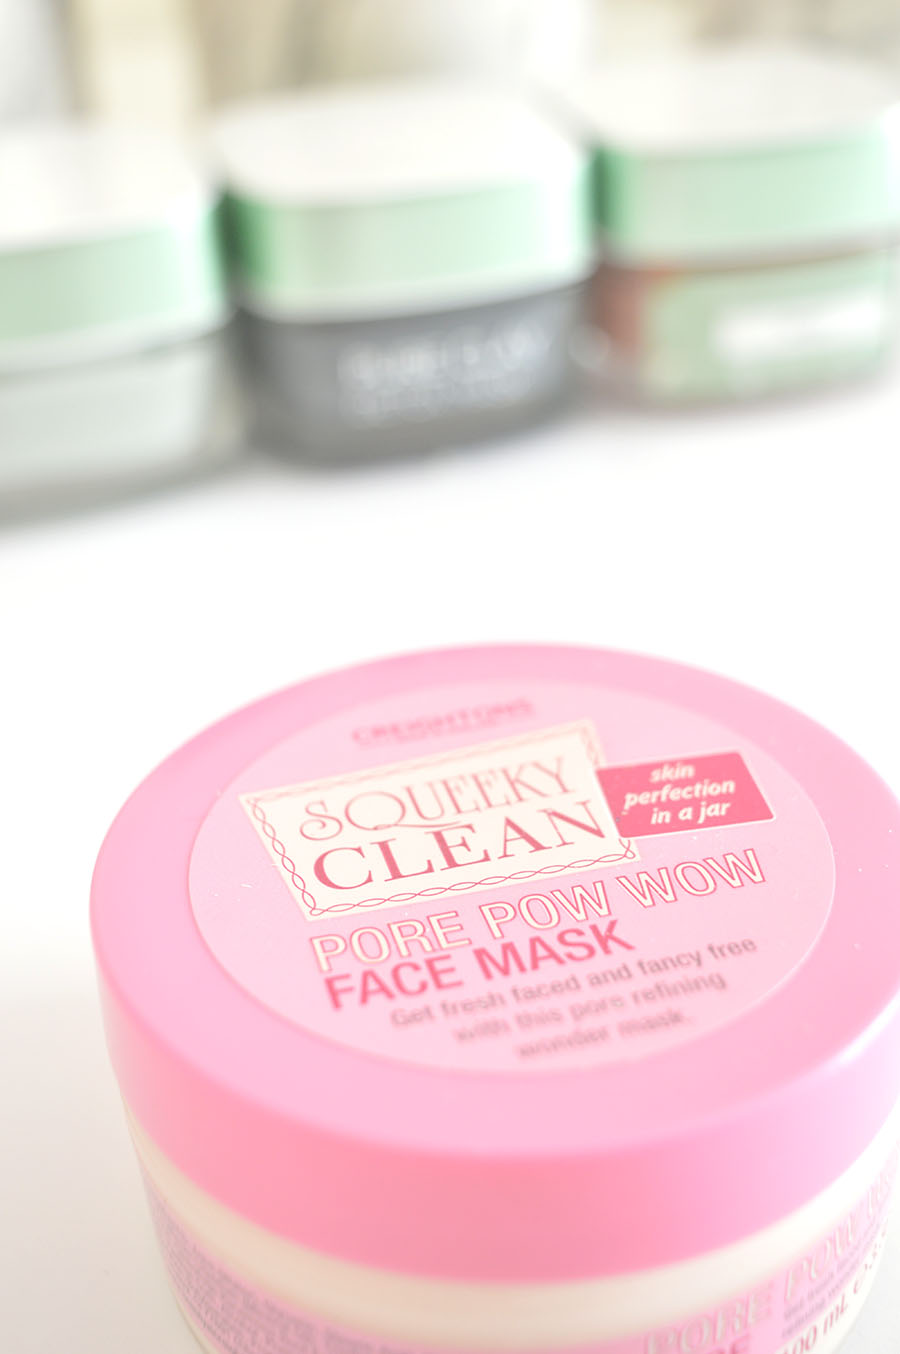 Pore face mask